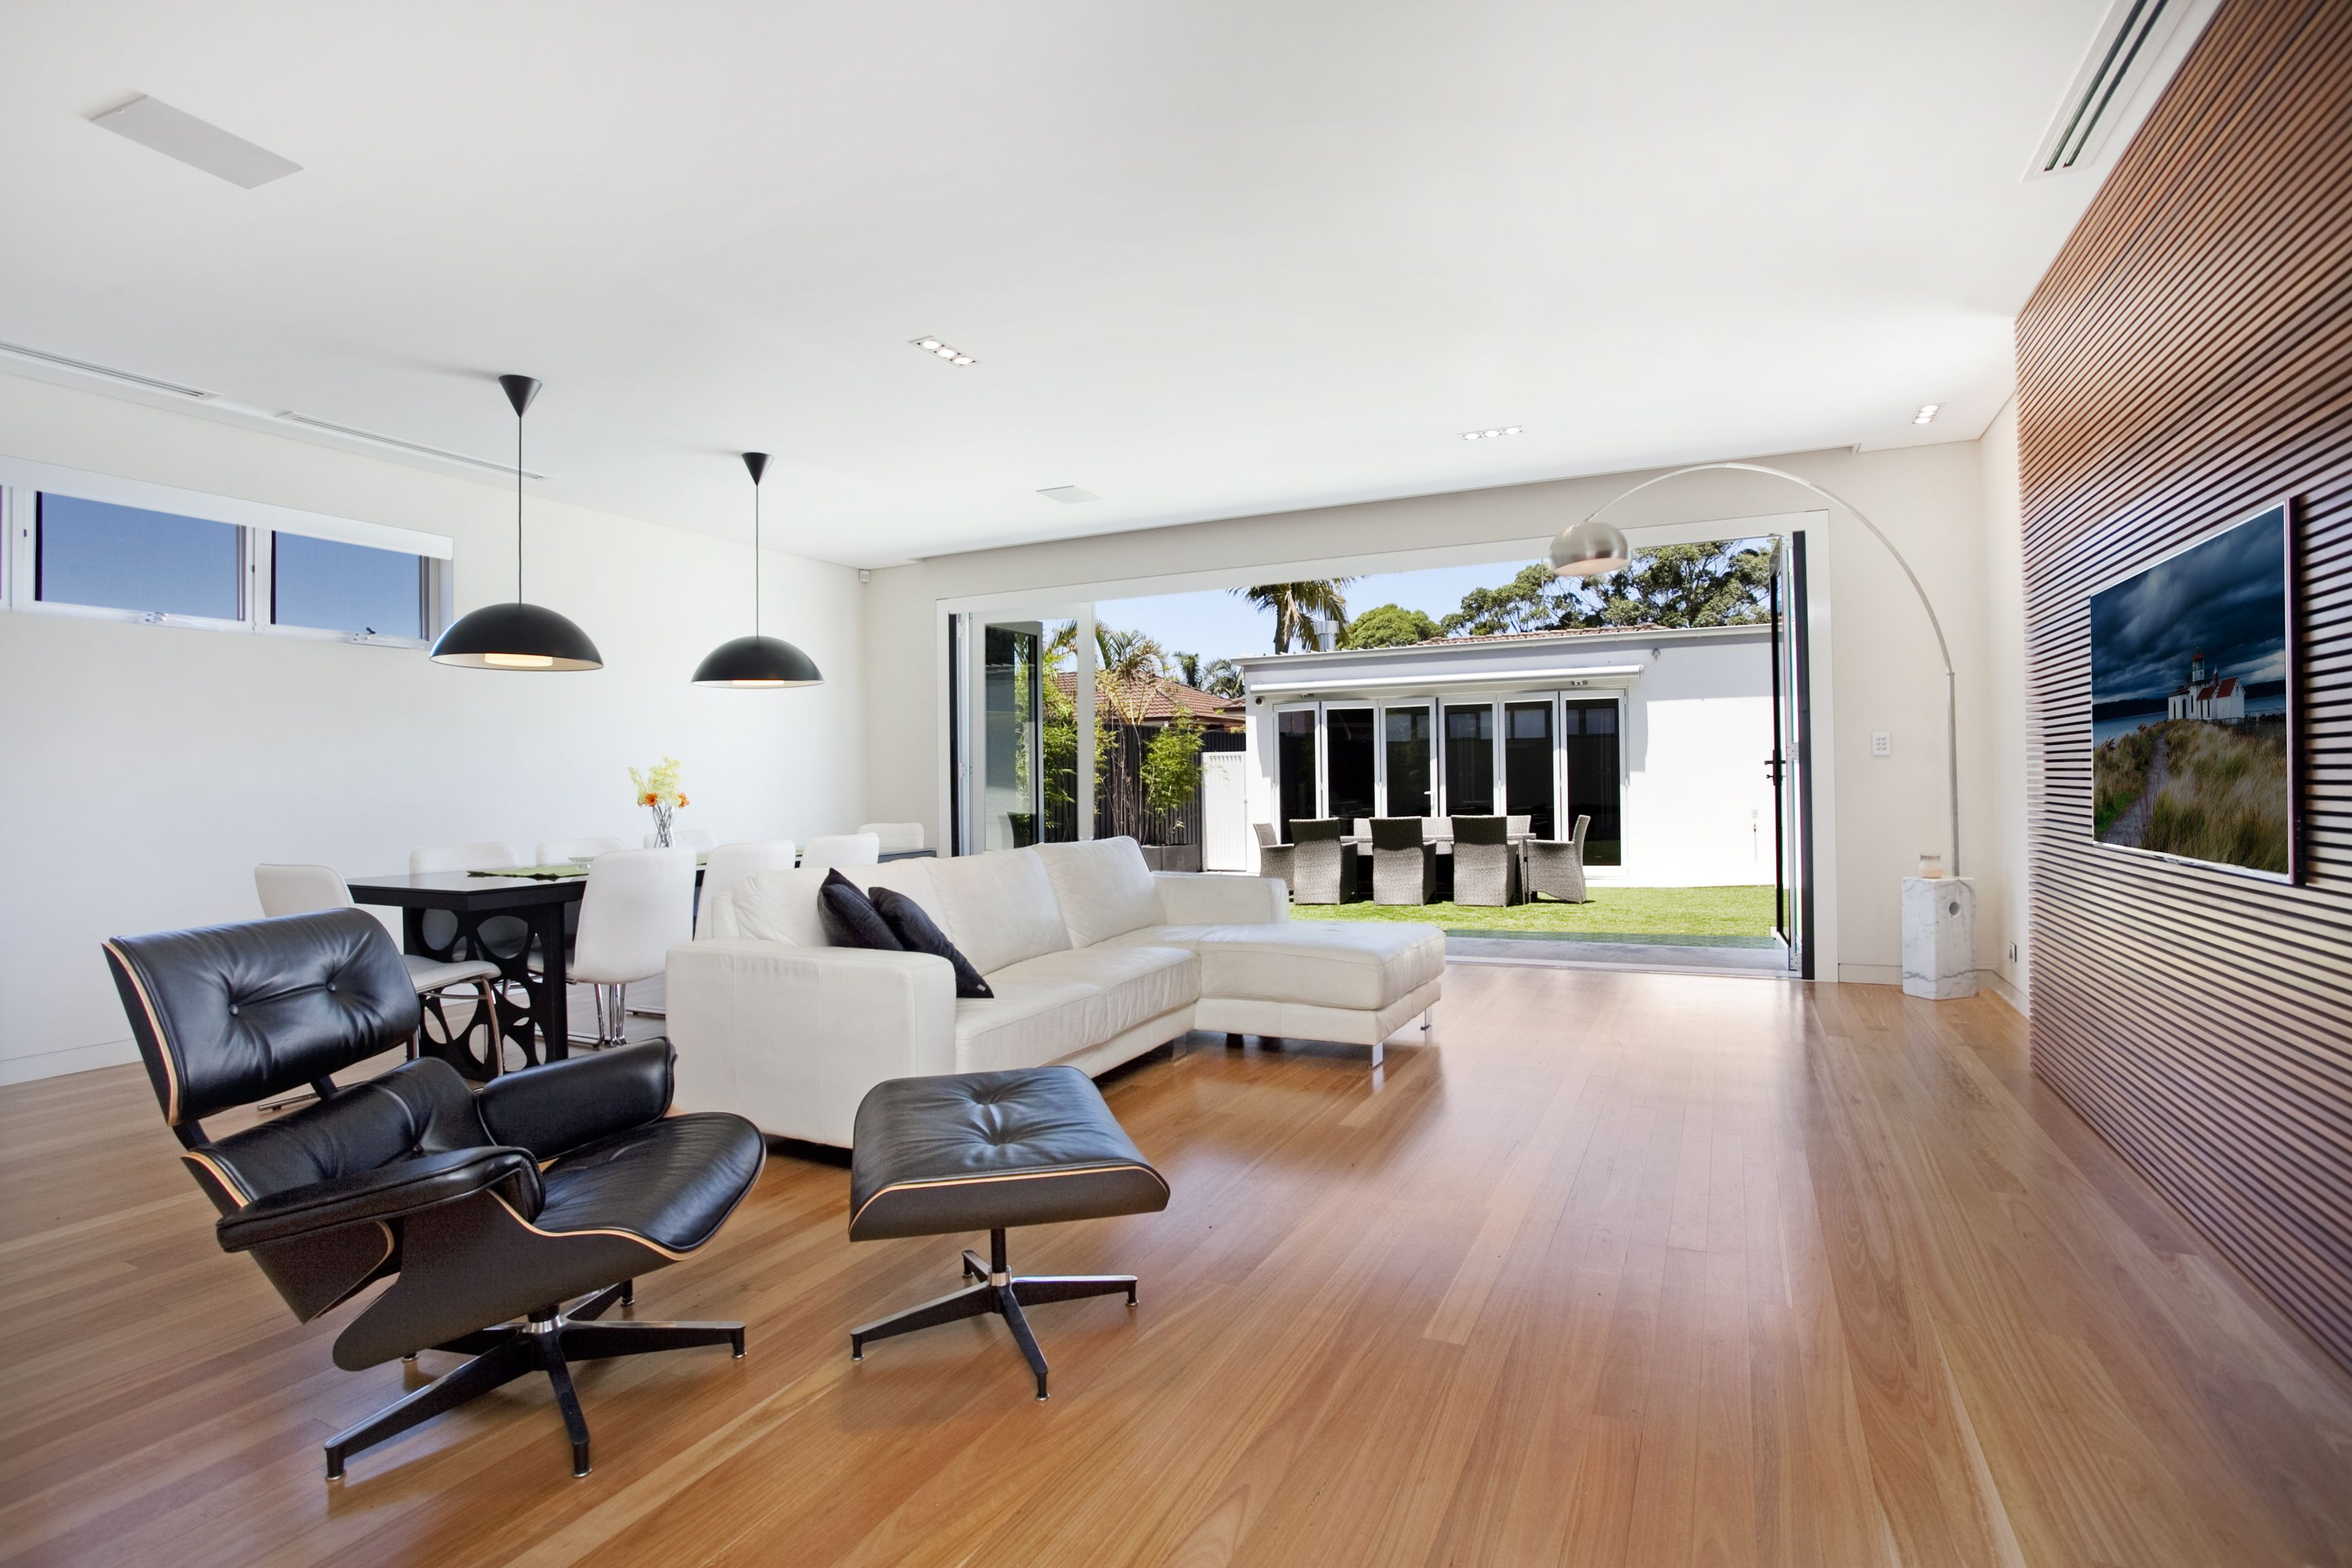 Don't you love the leather chair? #Sydney #Interiordesign #realestate #photography by remaustralia.com